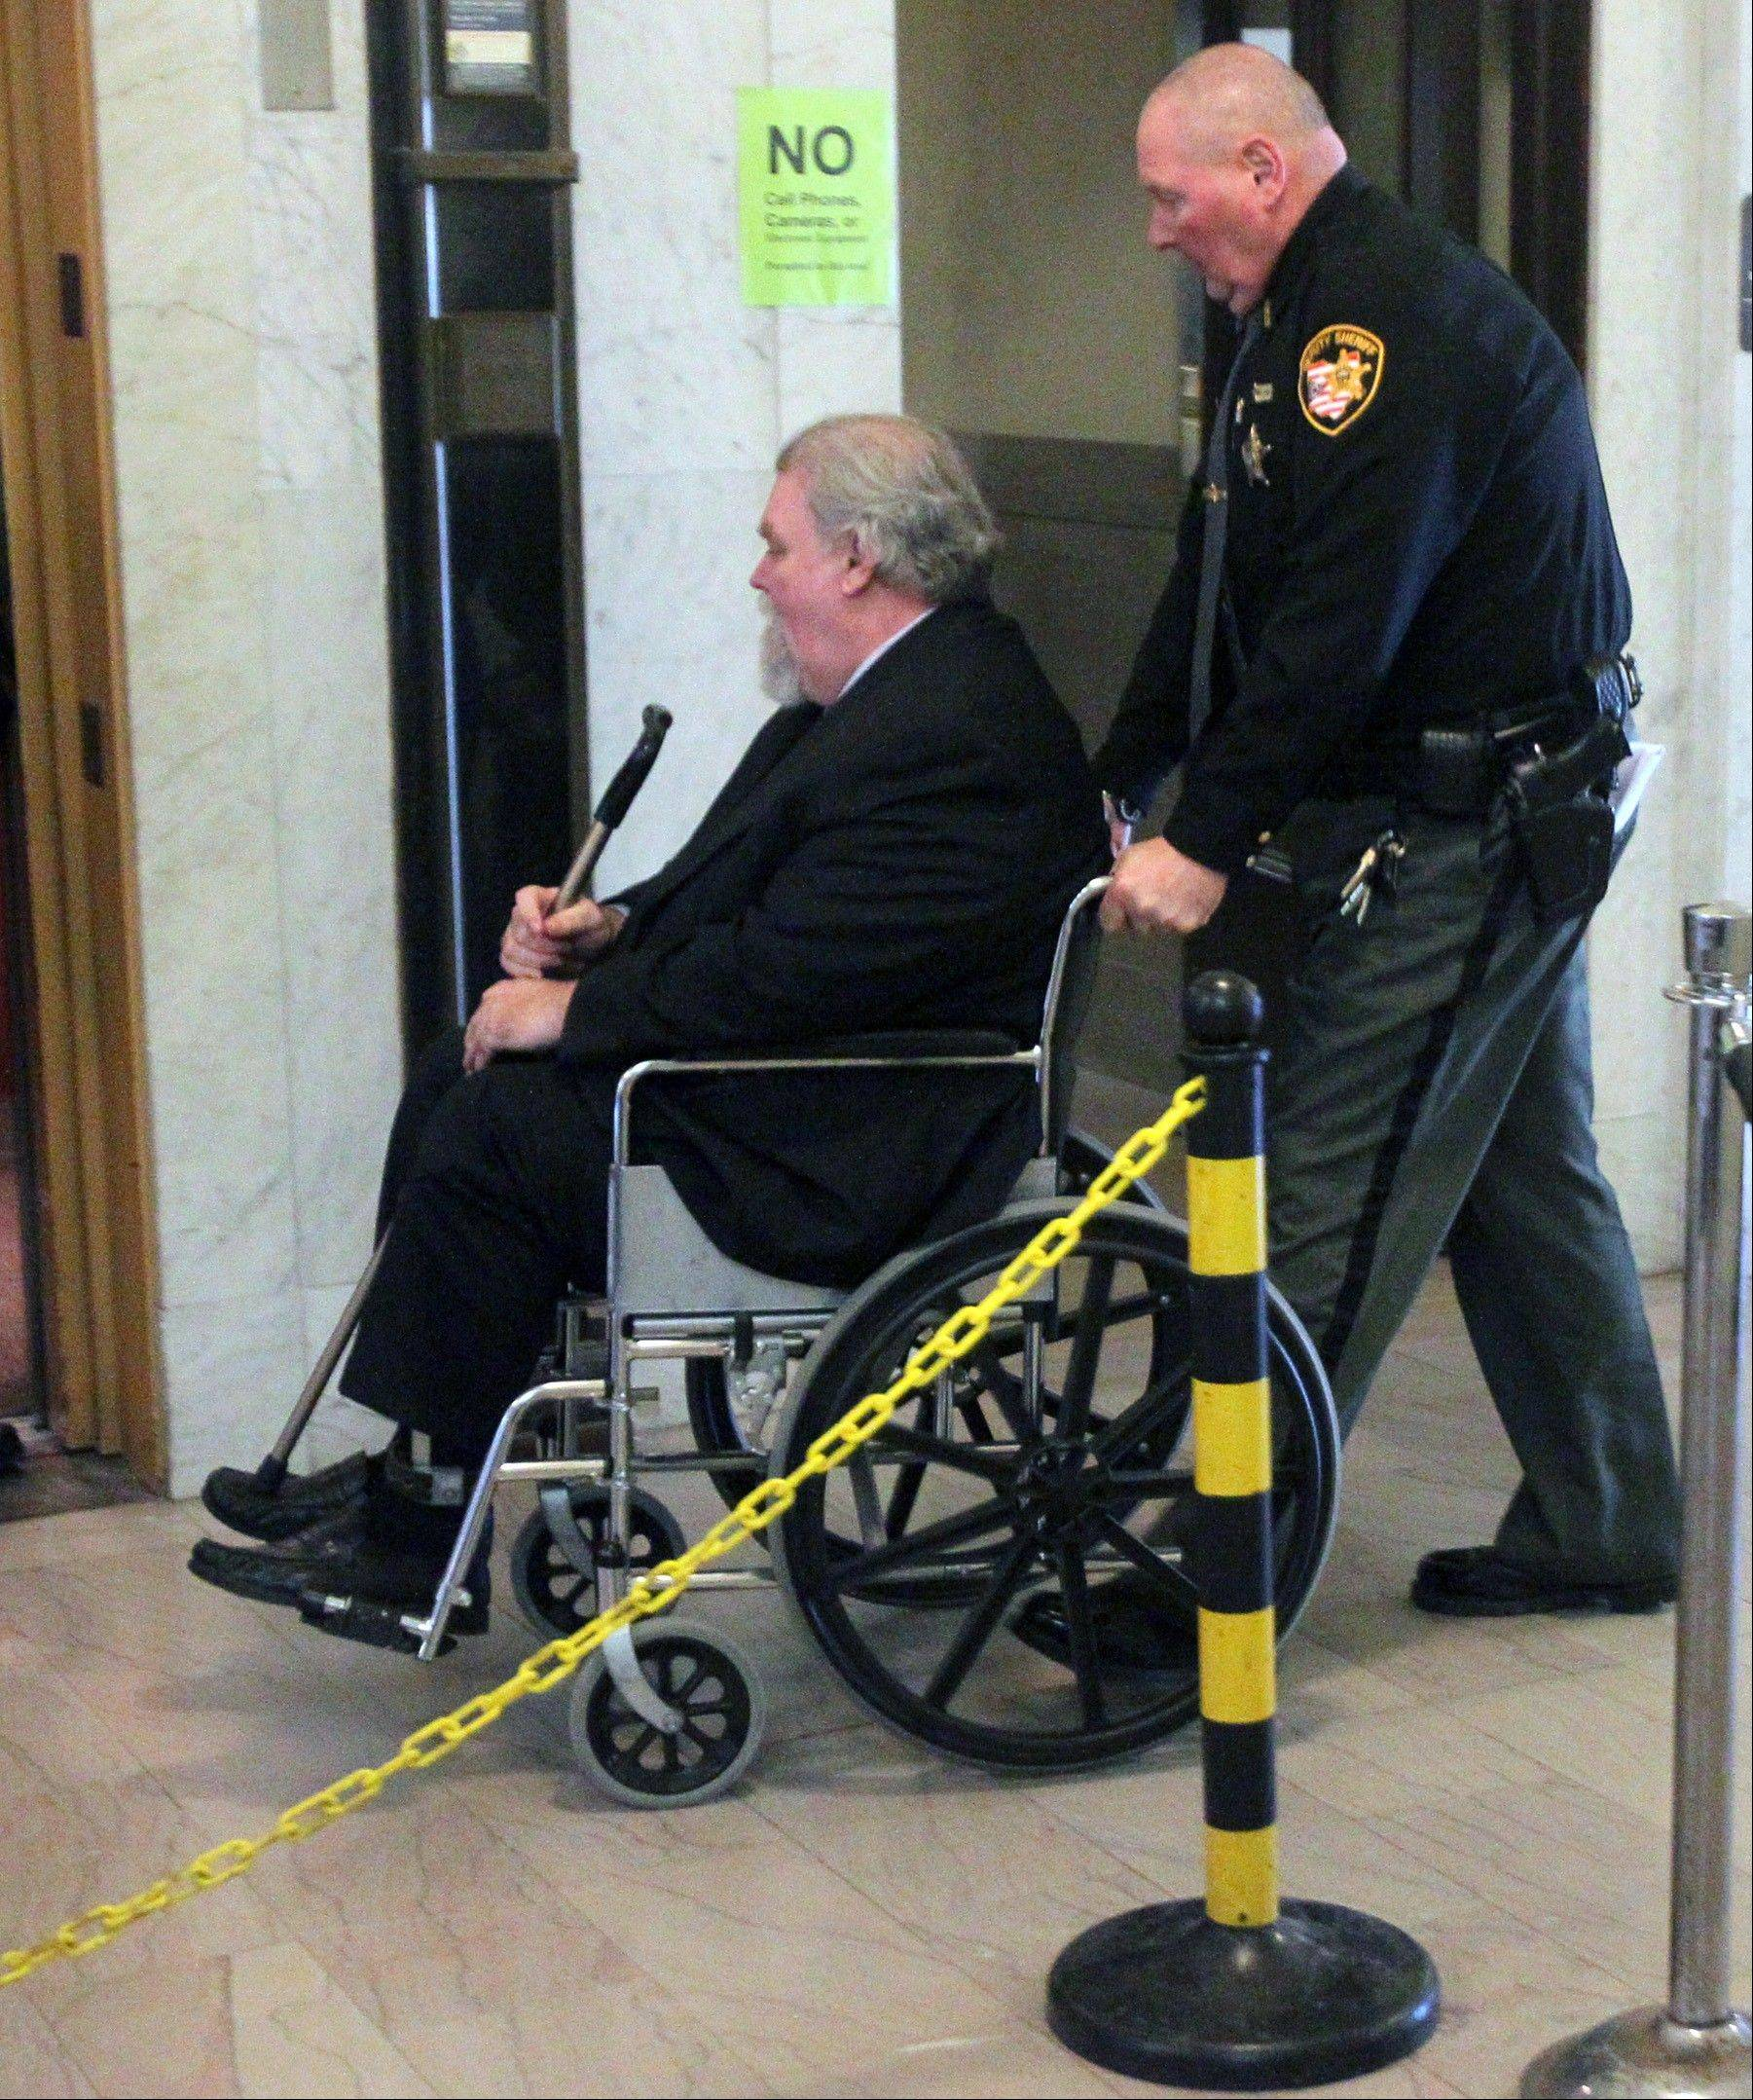 Associated PressA Summit County Sheriff's Deputy wheels defendant Richard Beasley to the elevator at the conclusion of testimony in his murder trial in Summit County Court on Monday.